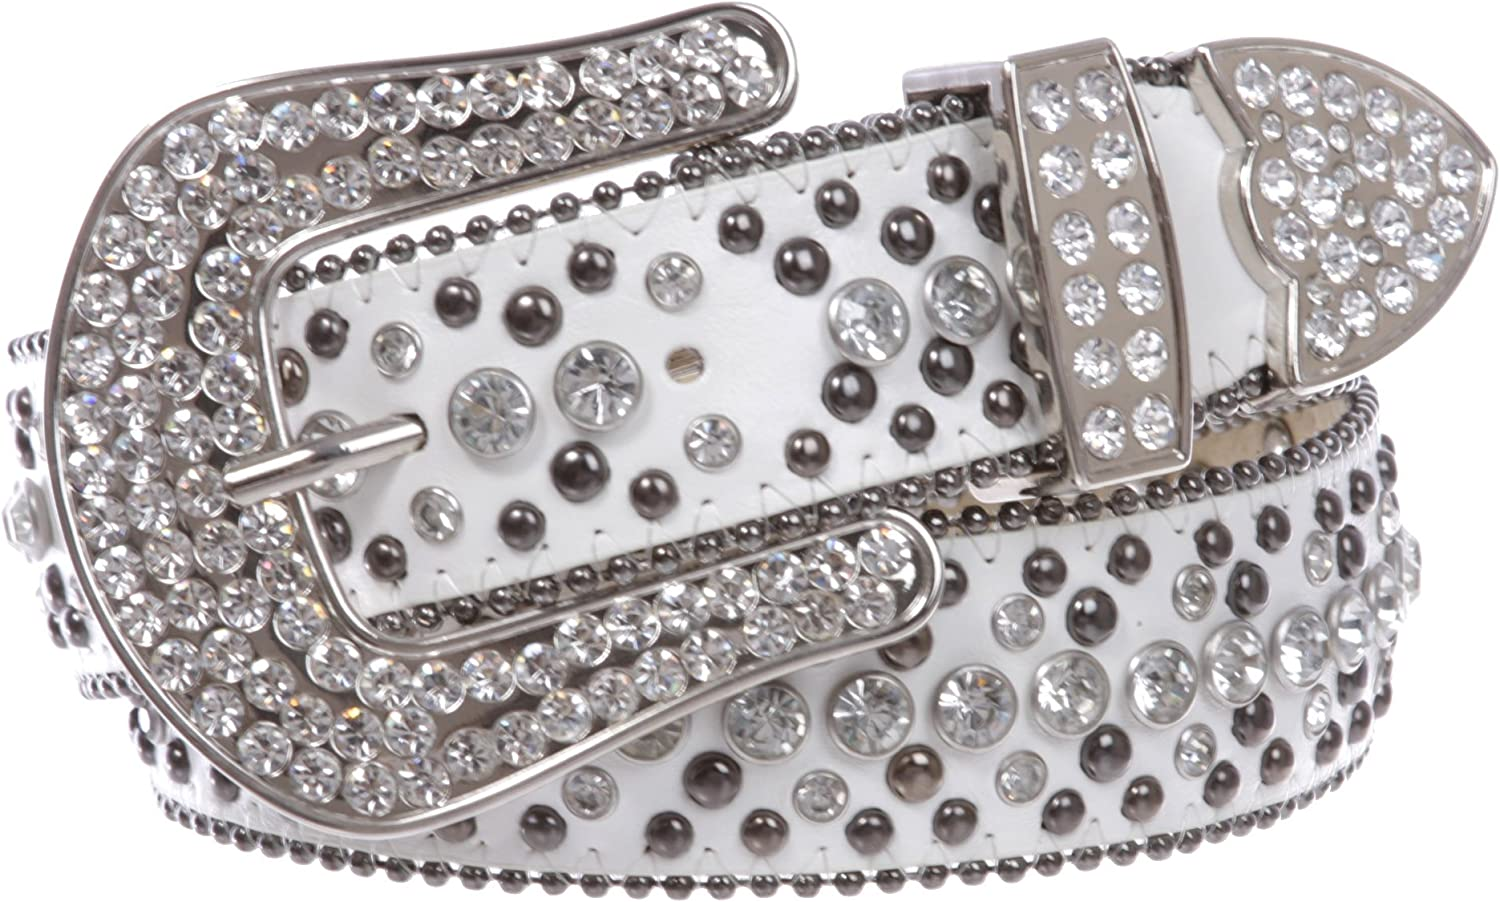 1 1 2  Women's Snap On Rhinestone and Gun Metal color Circle Studded Leather Belt, White   S M  31